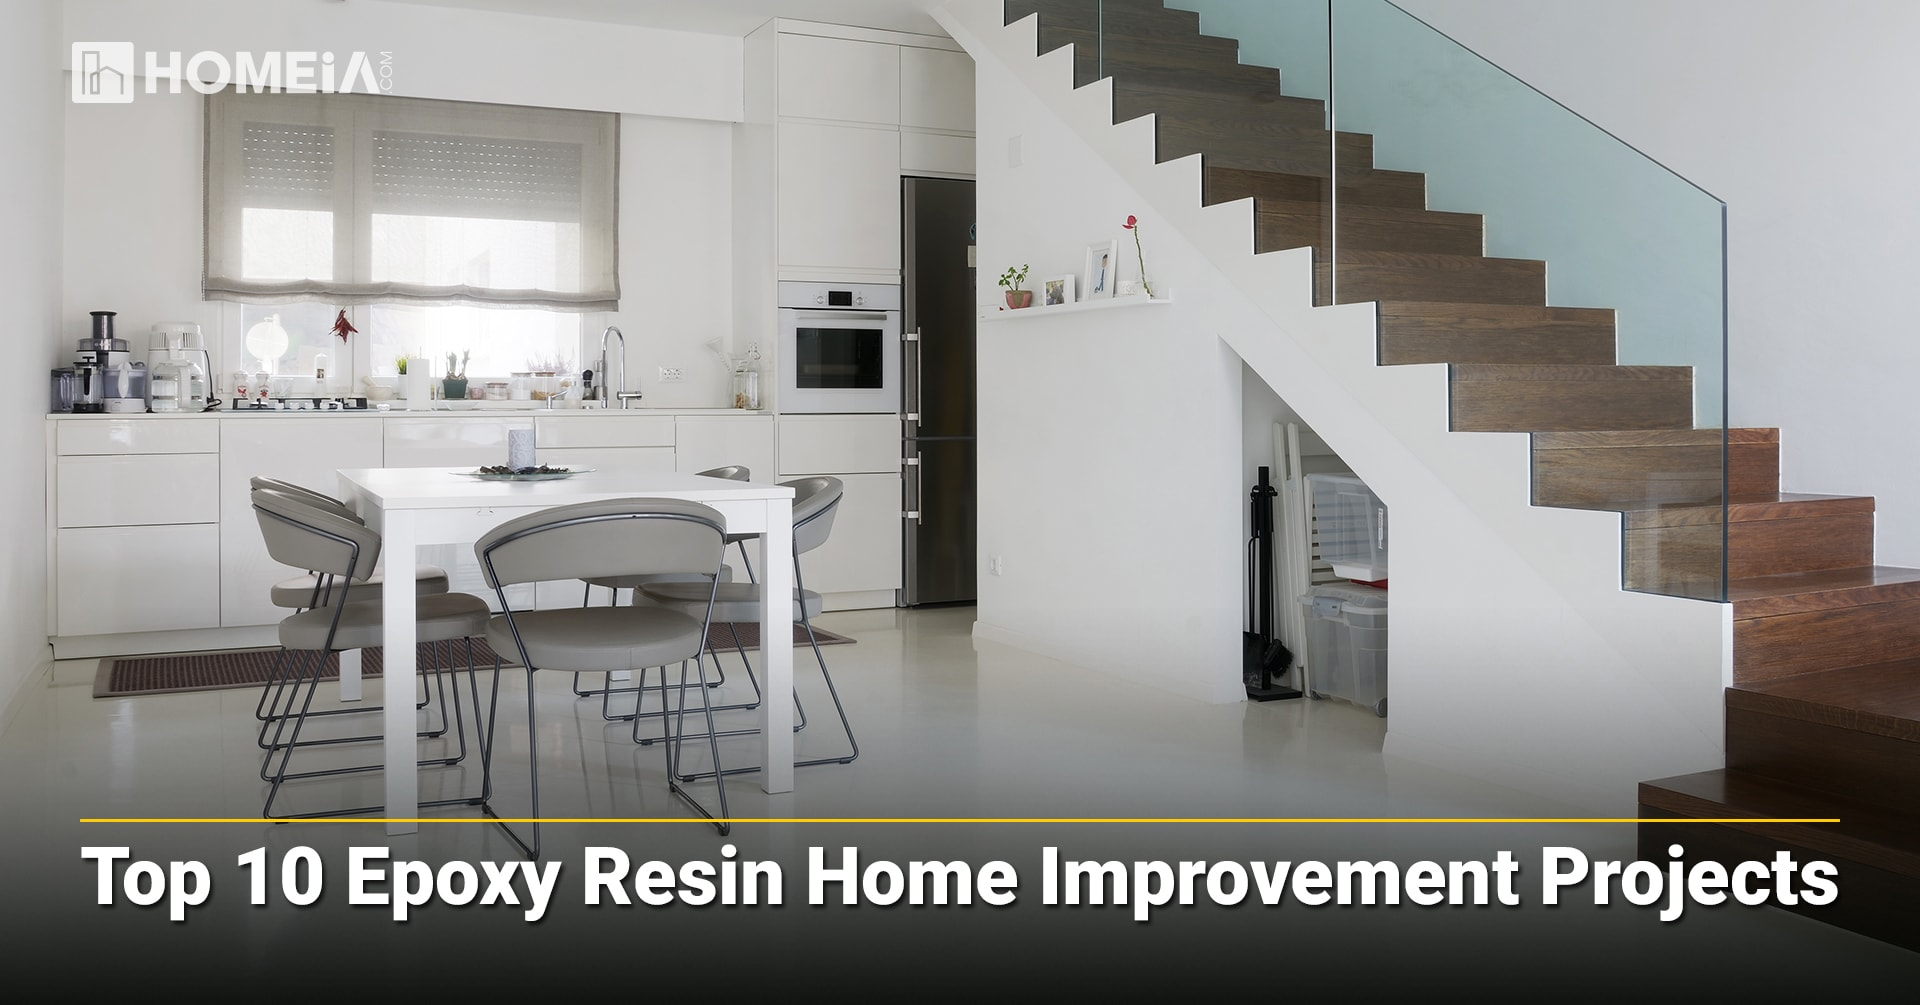 Top 10 Epoxy Resin Home Improvement Projects